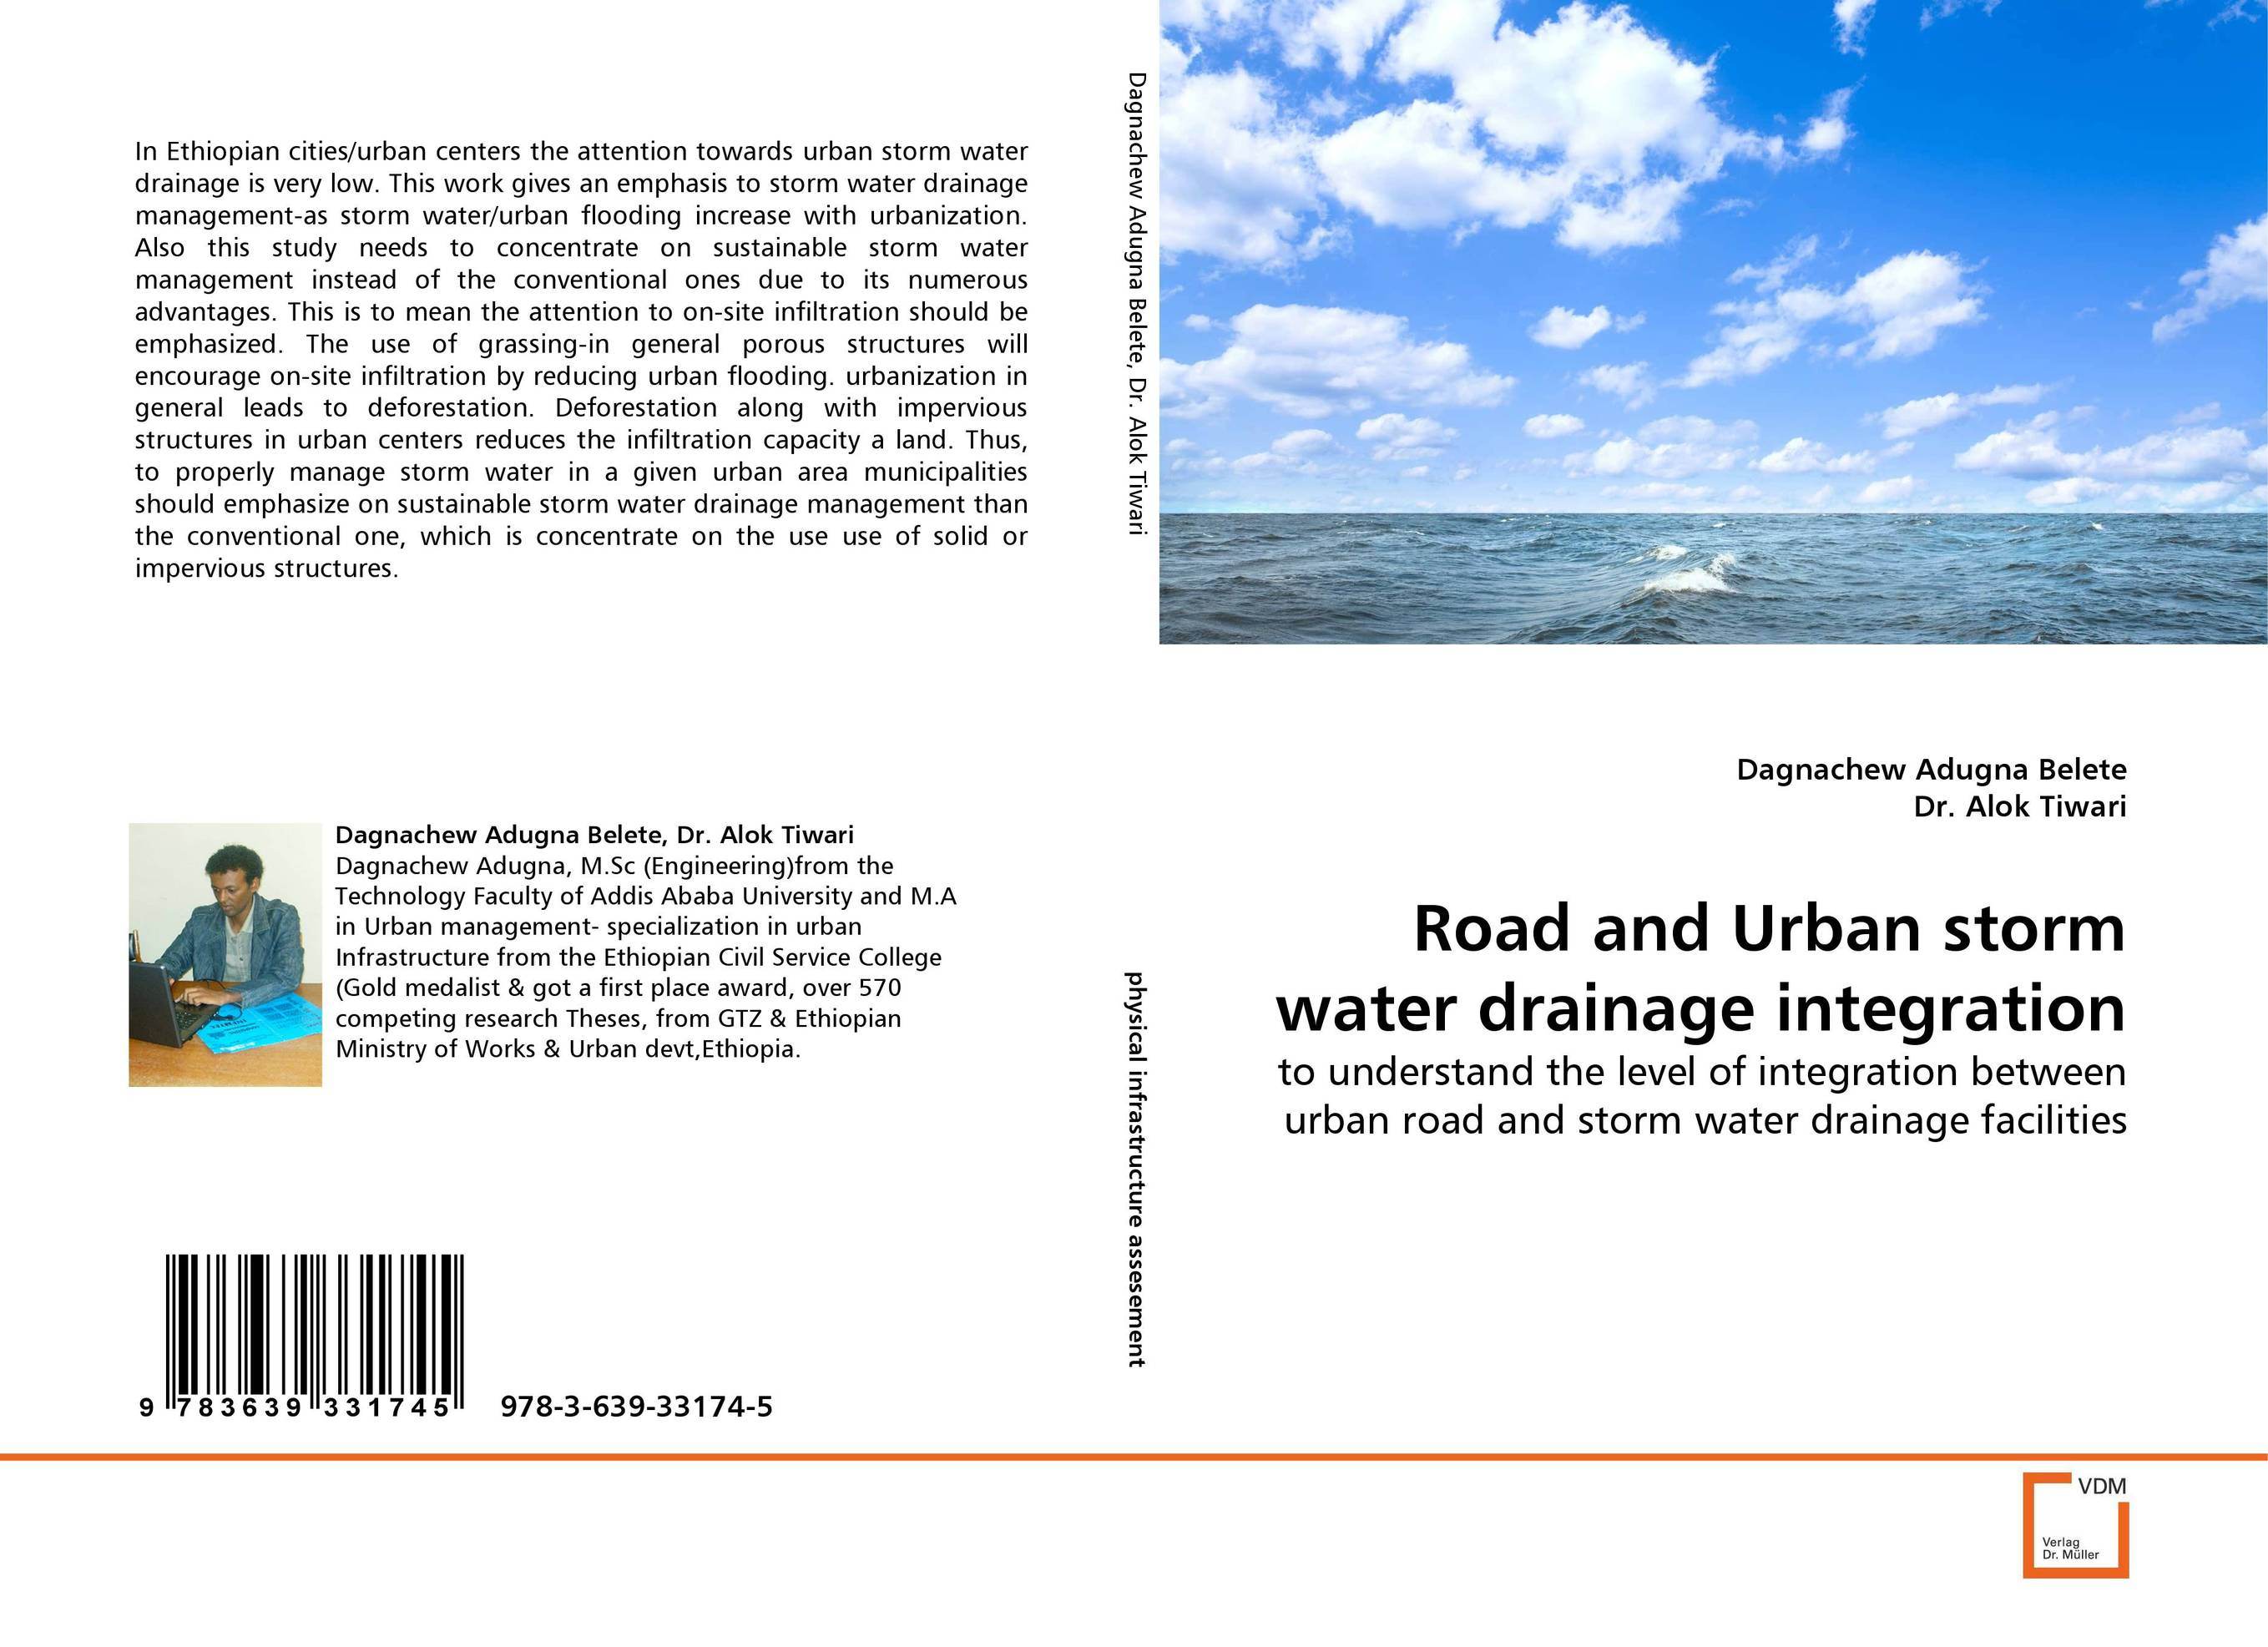 Road and Urban storm water drainage integration sword in the storm